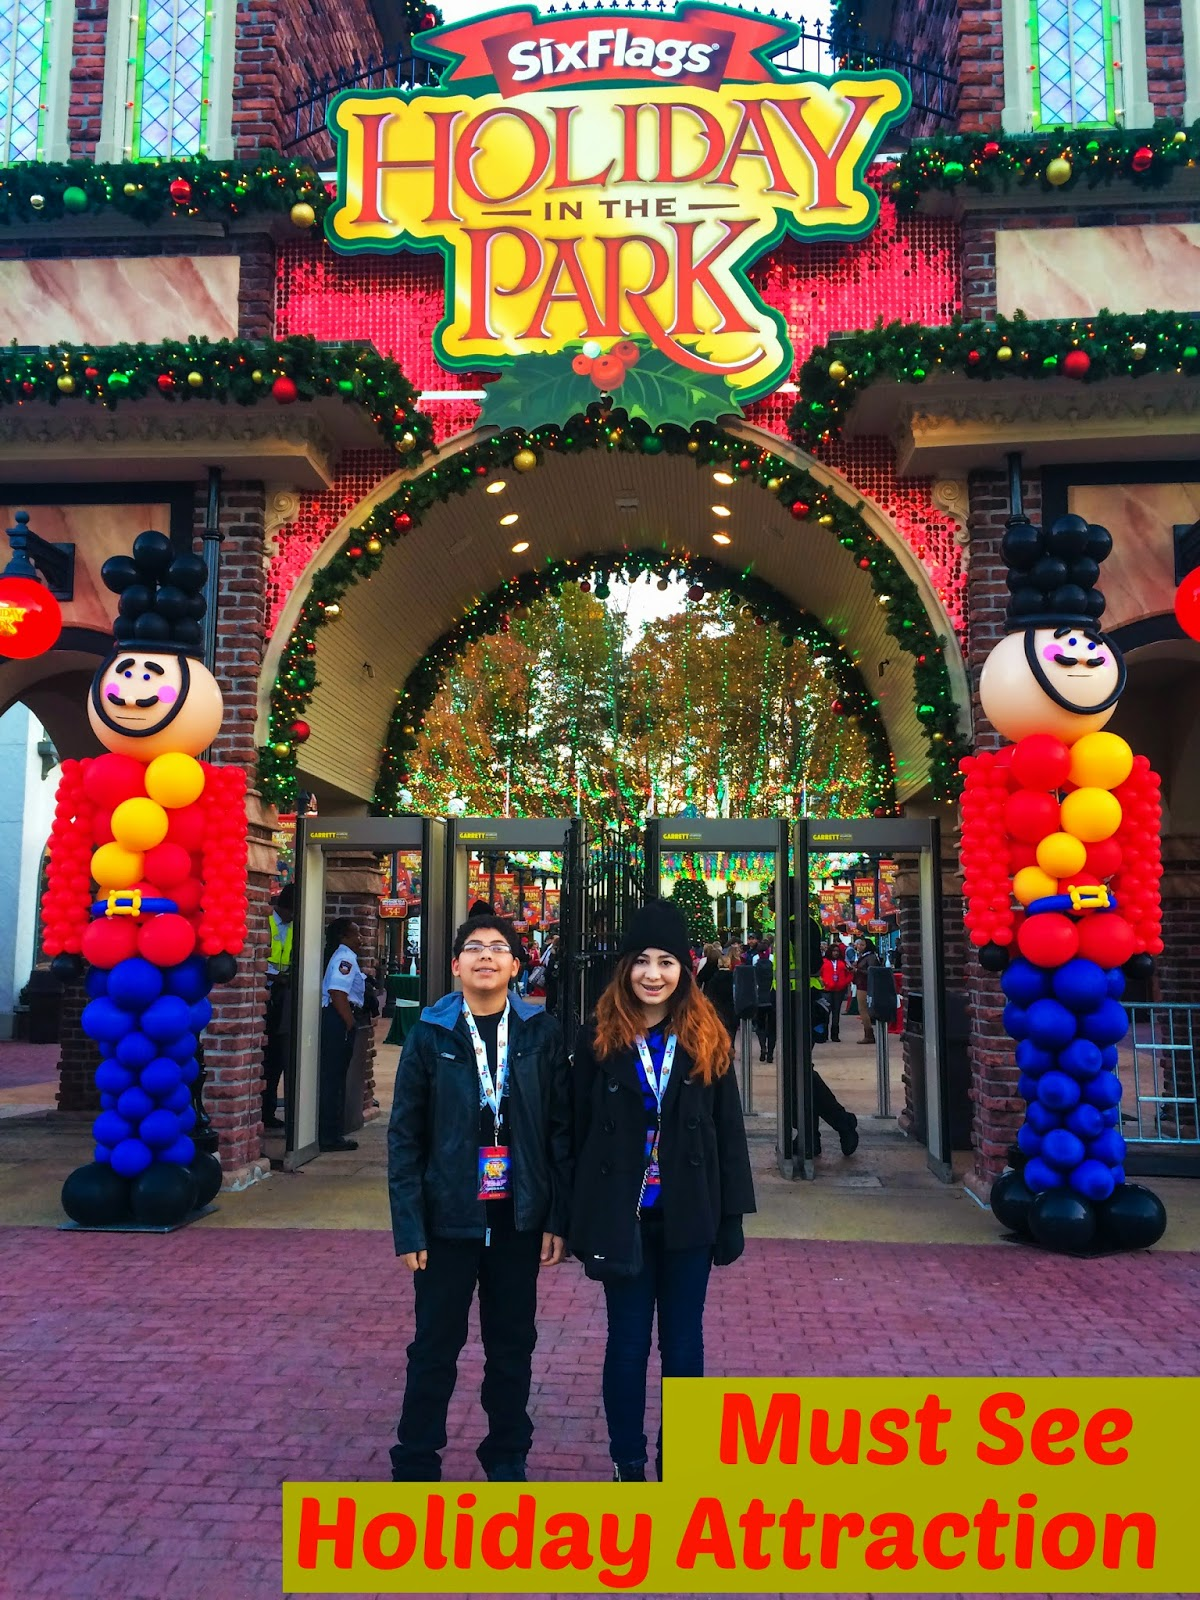 10 reasons to visit holiday in the park at six flags over